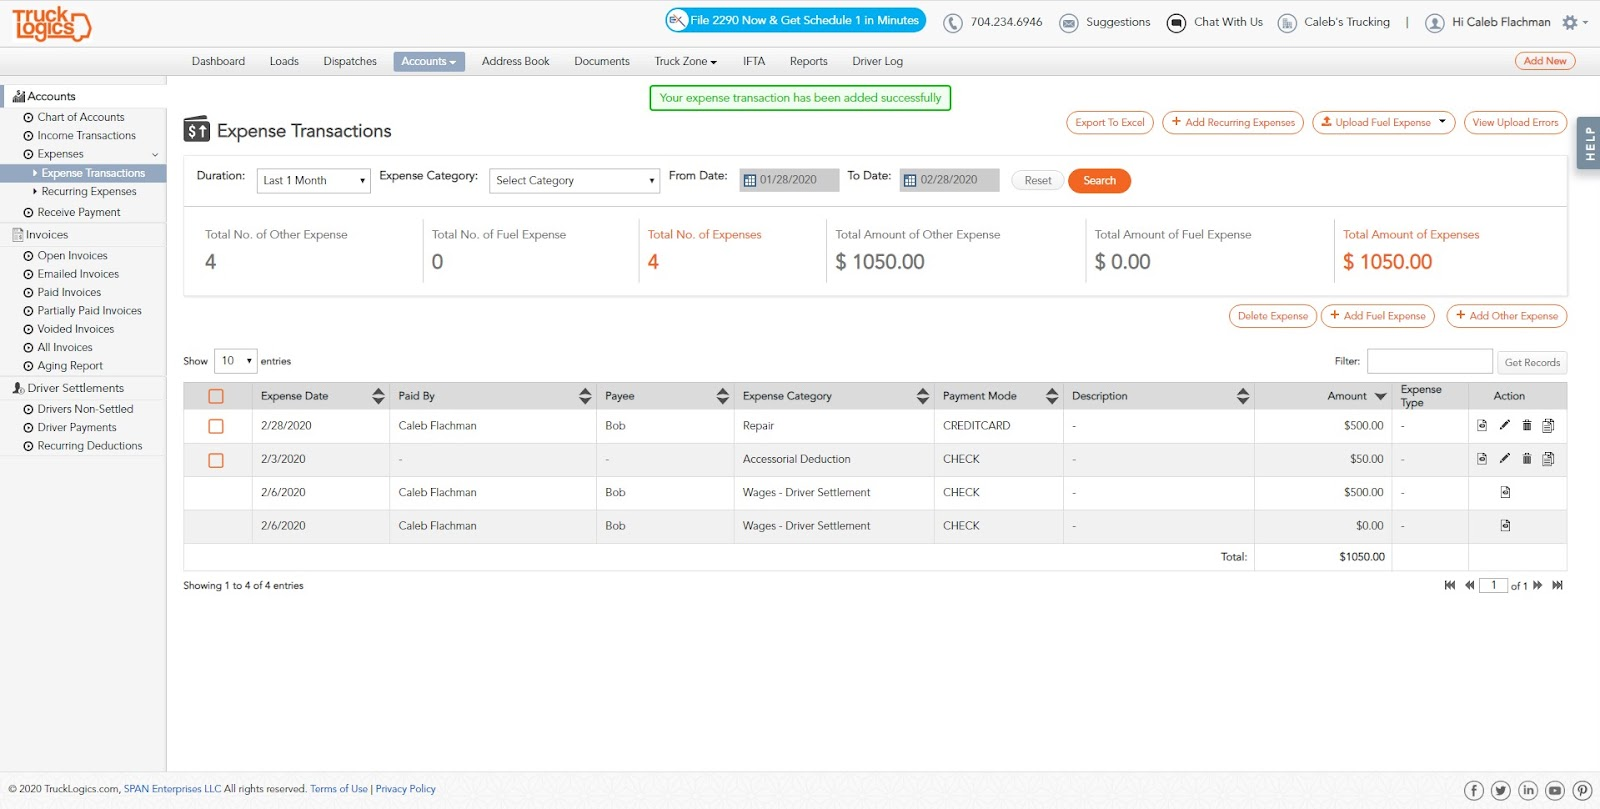 TruckLogics Truck Management Software for expenses